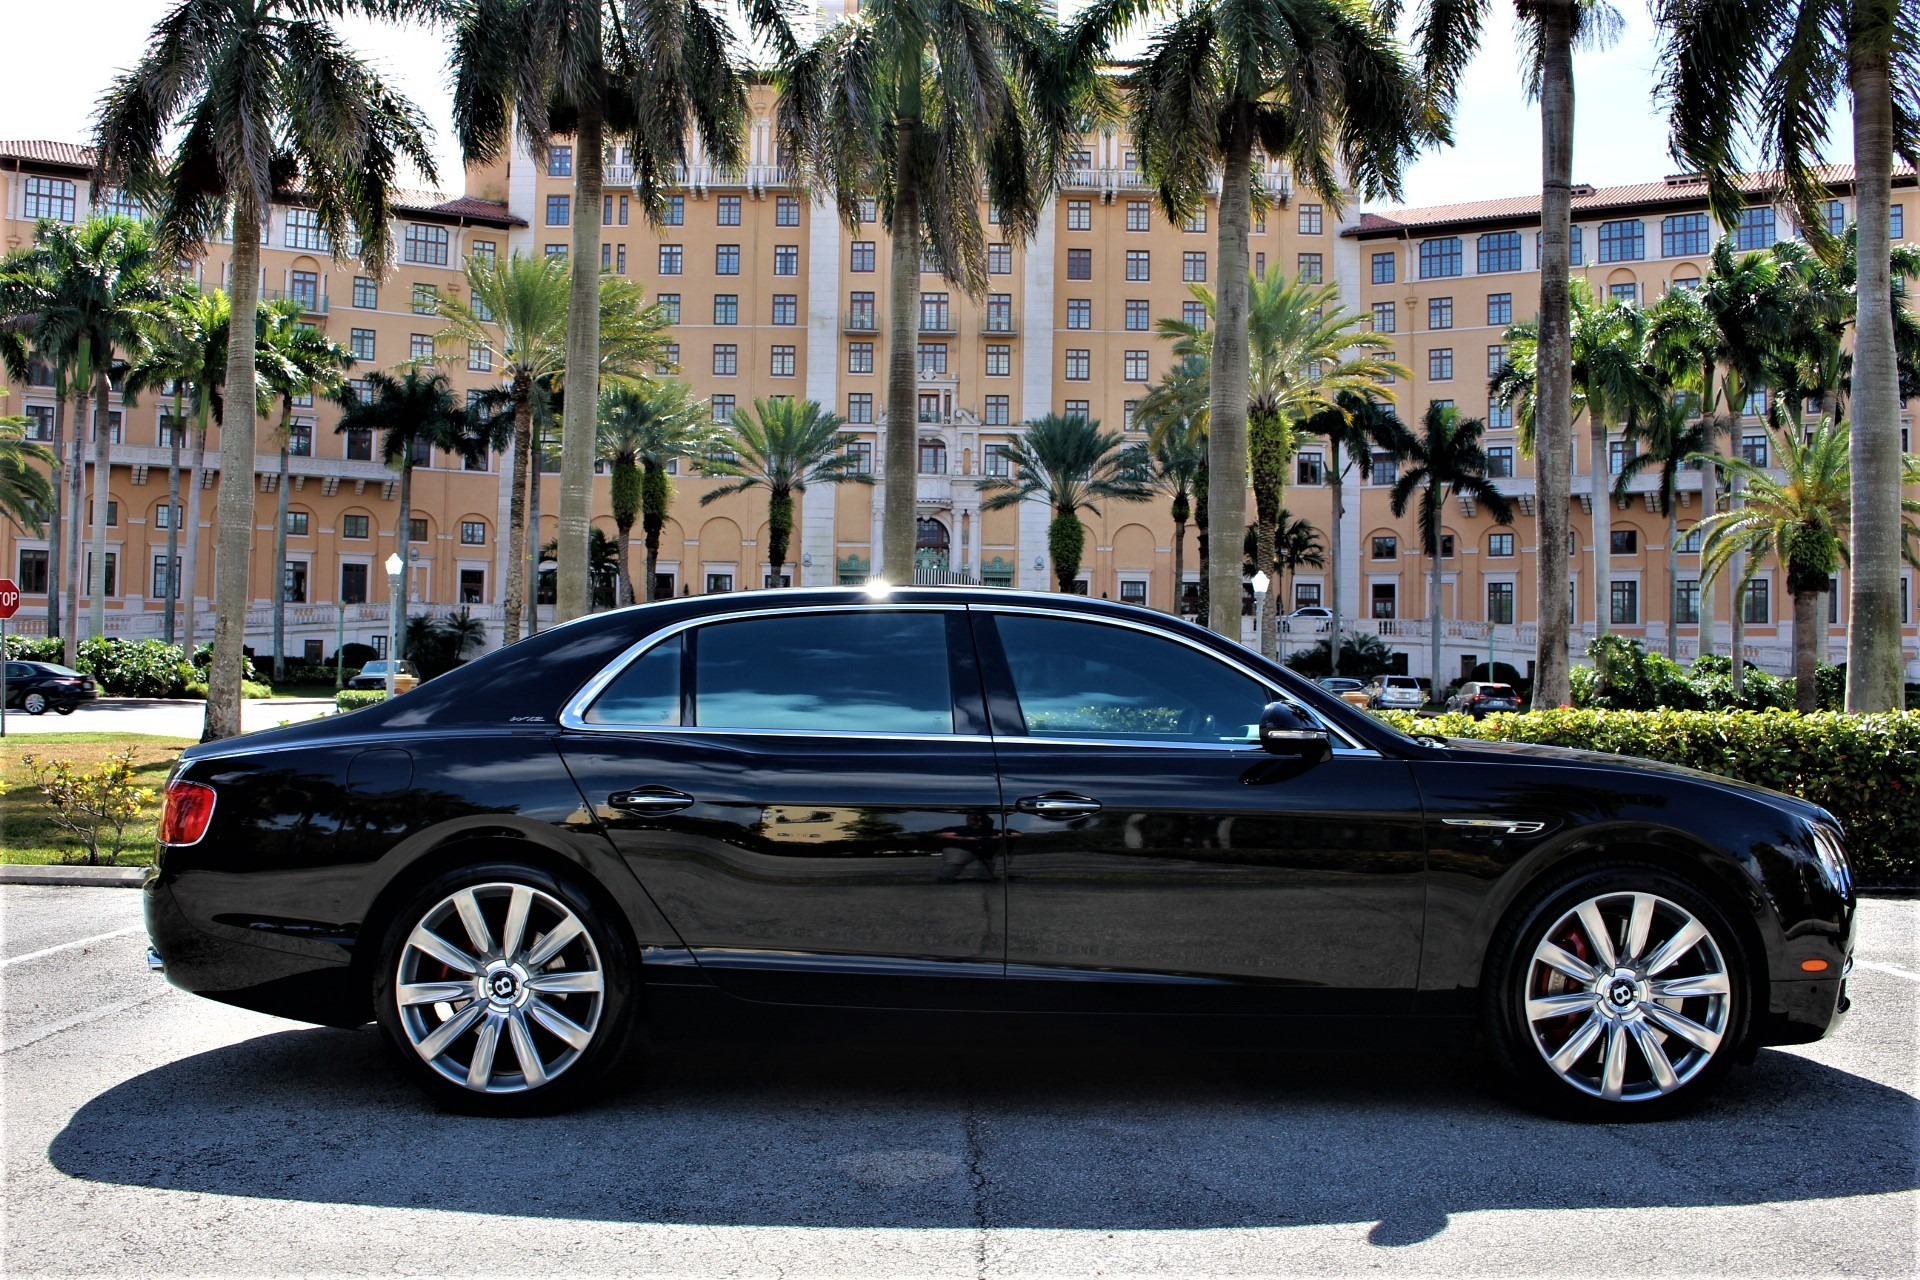 Used 2015 Bentley Flying Spur W12 for sale Sold at The Gables Sports Cars in Miami FL 33146 1